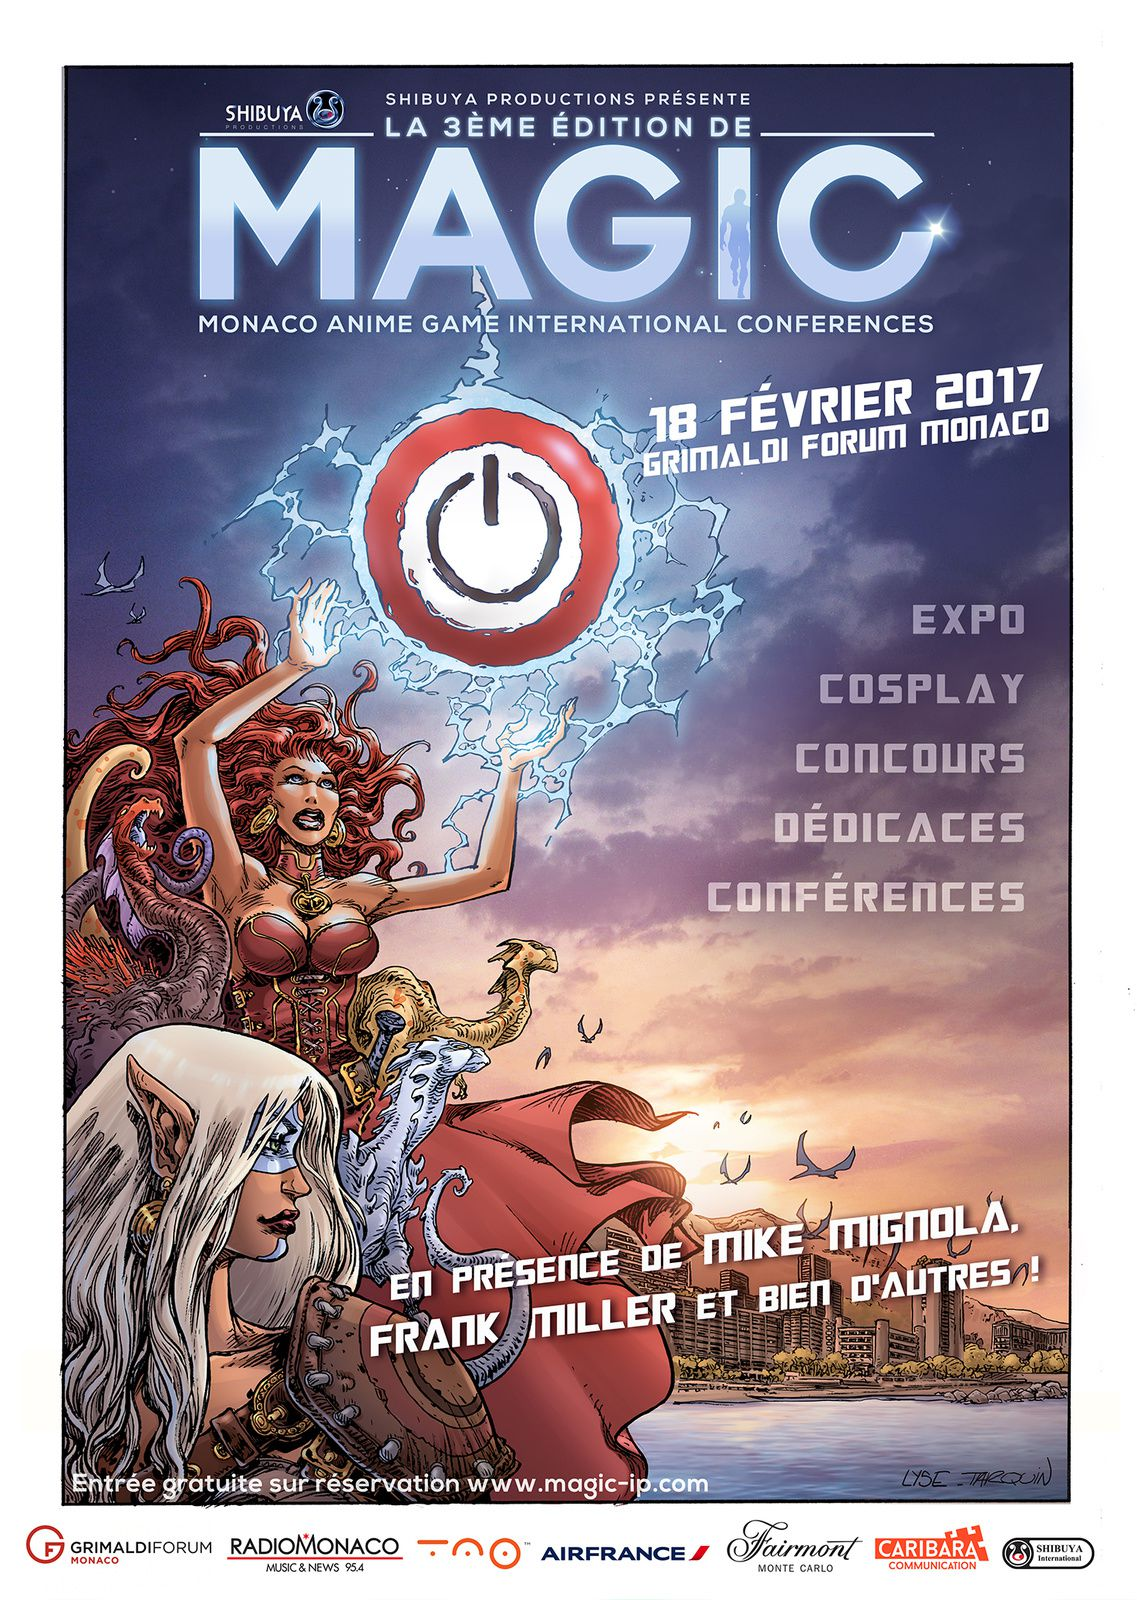 GRIMALDI FORUM- MAGIC: Monaco Anime Game International Conferences - le 18 février